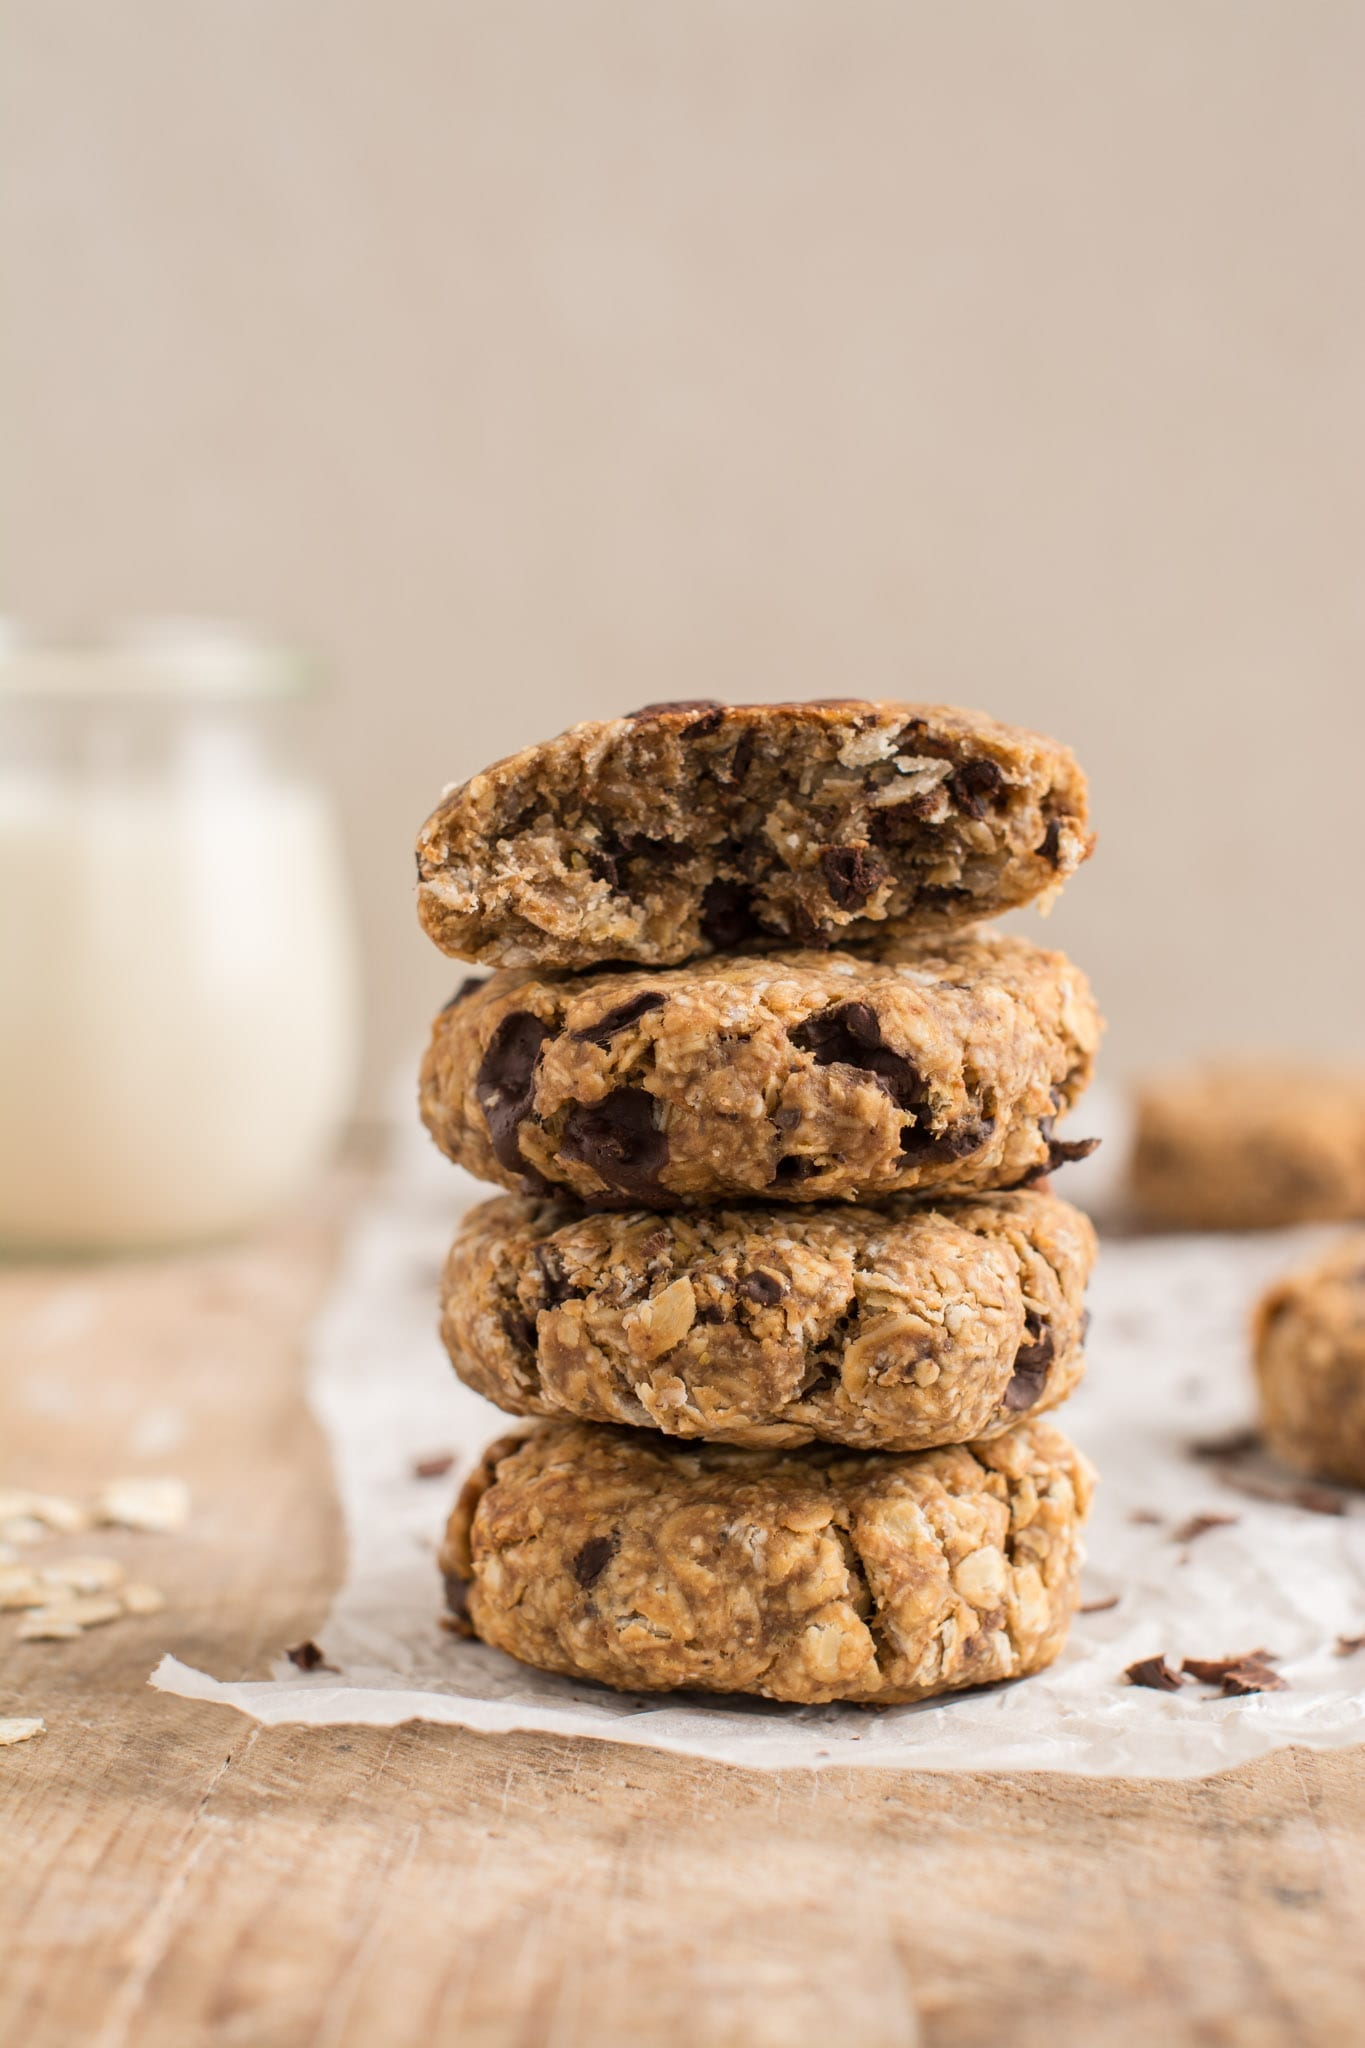 Super easy and delicious vegan oatmeal cookies that are soft and chewy using whole food plant-based ingredients.